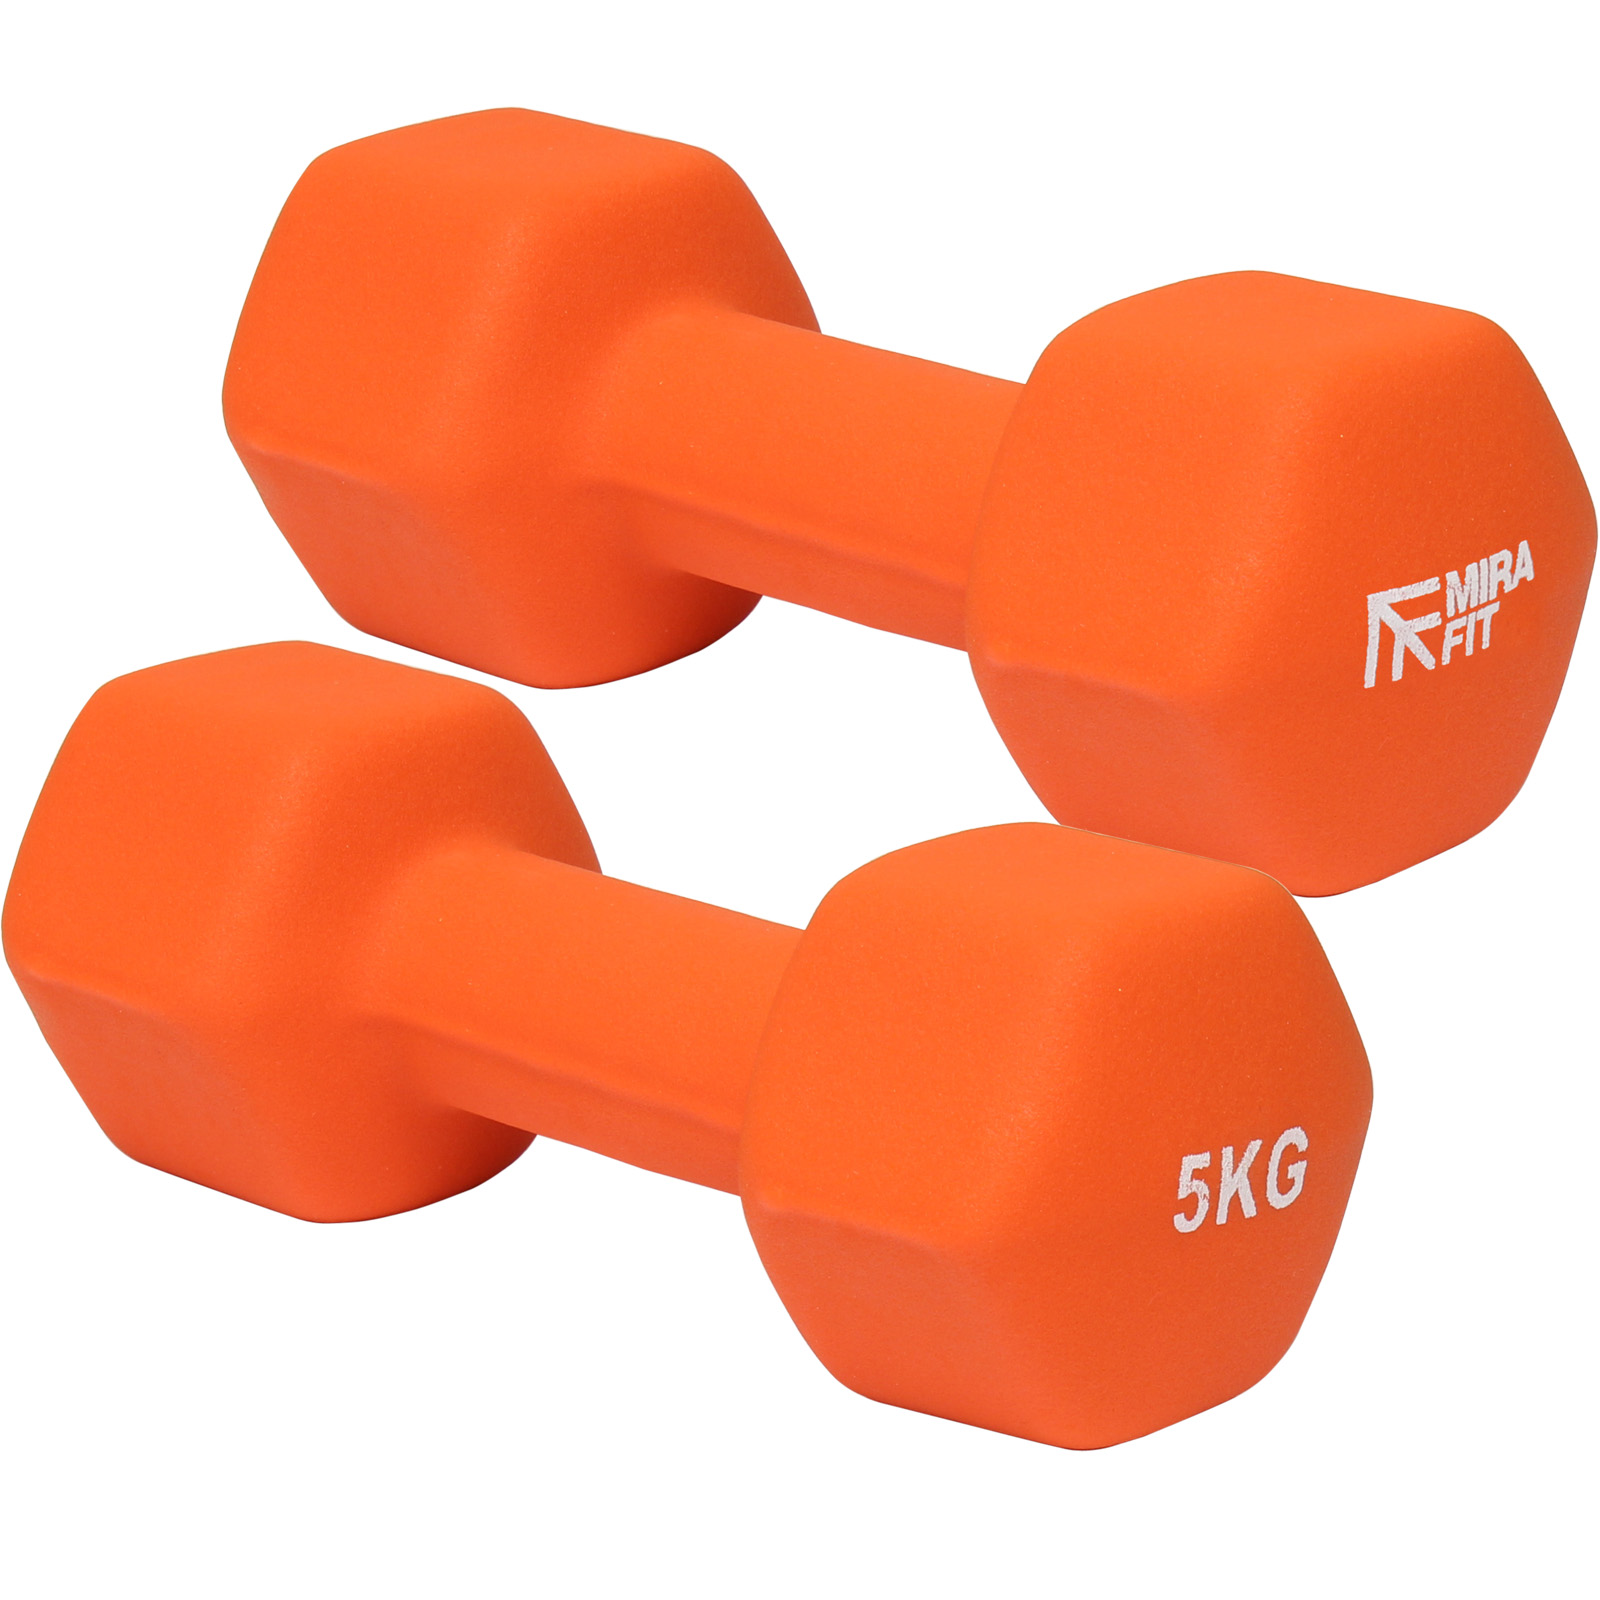 Mirafit Orange Hex Dumbbells Weights Aerobic Gym Exercise